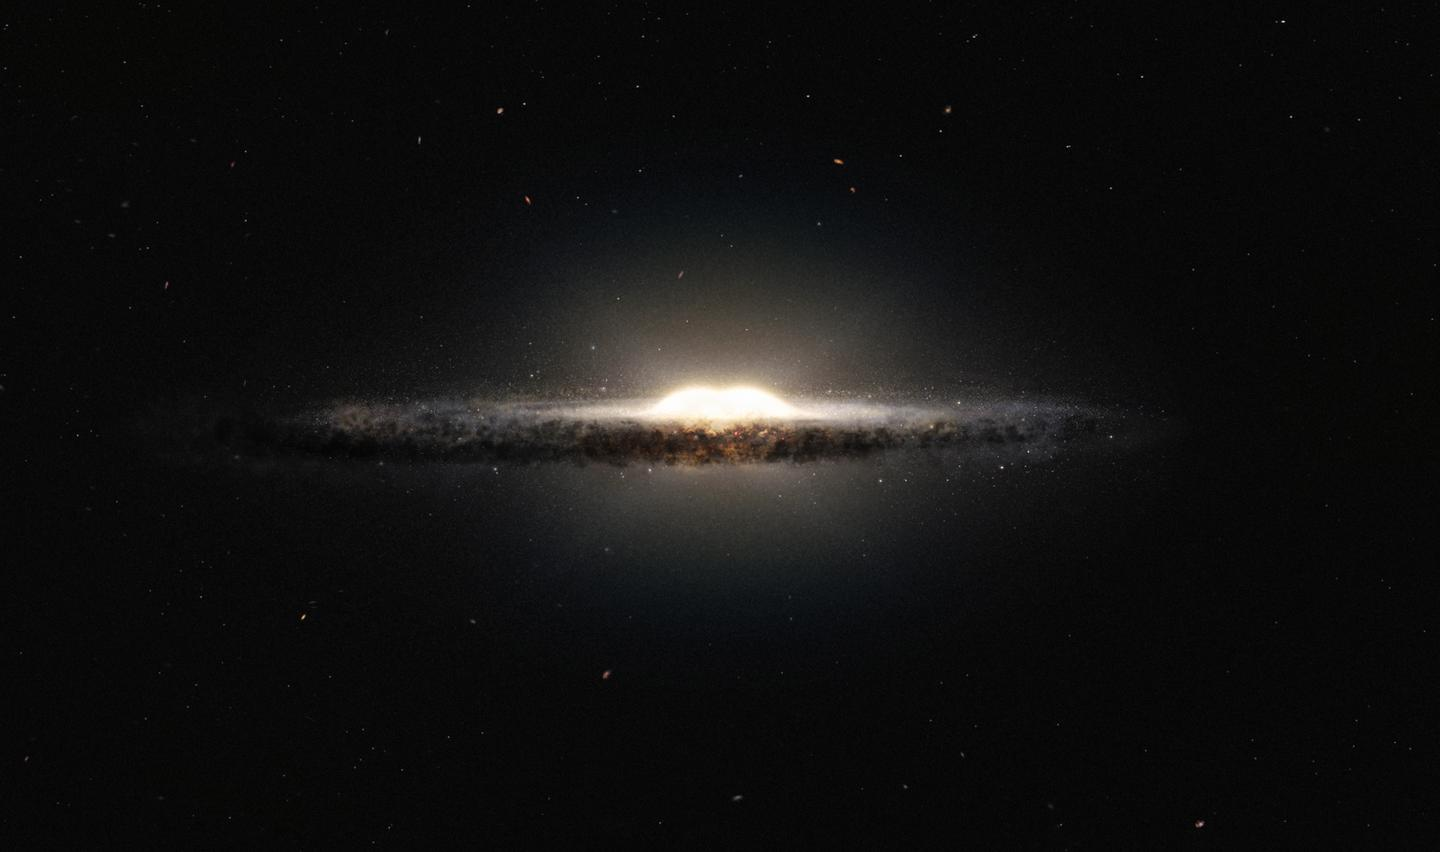 An artist's impression of the Milky Way galaxy showing its x-shaped core (Image: ESO)